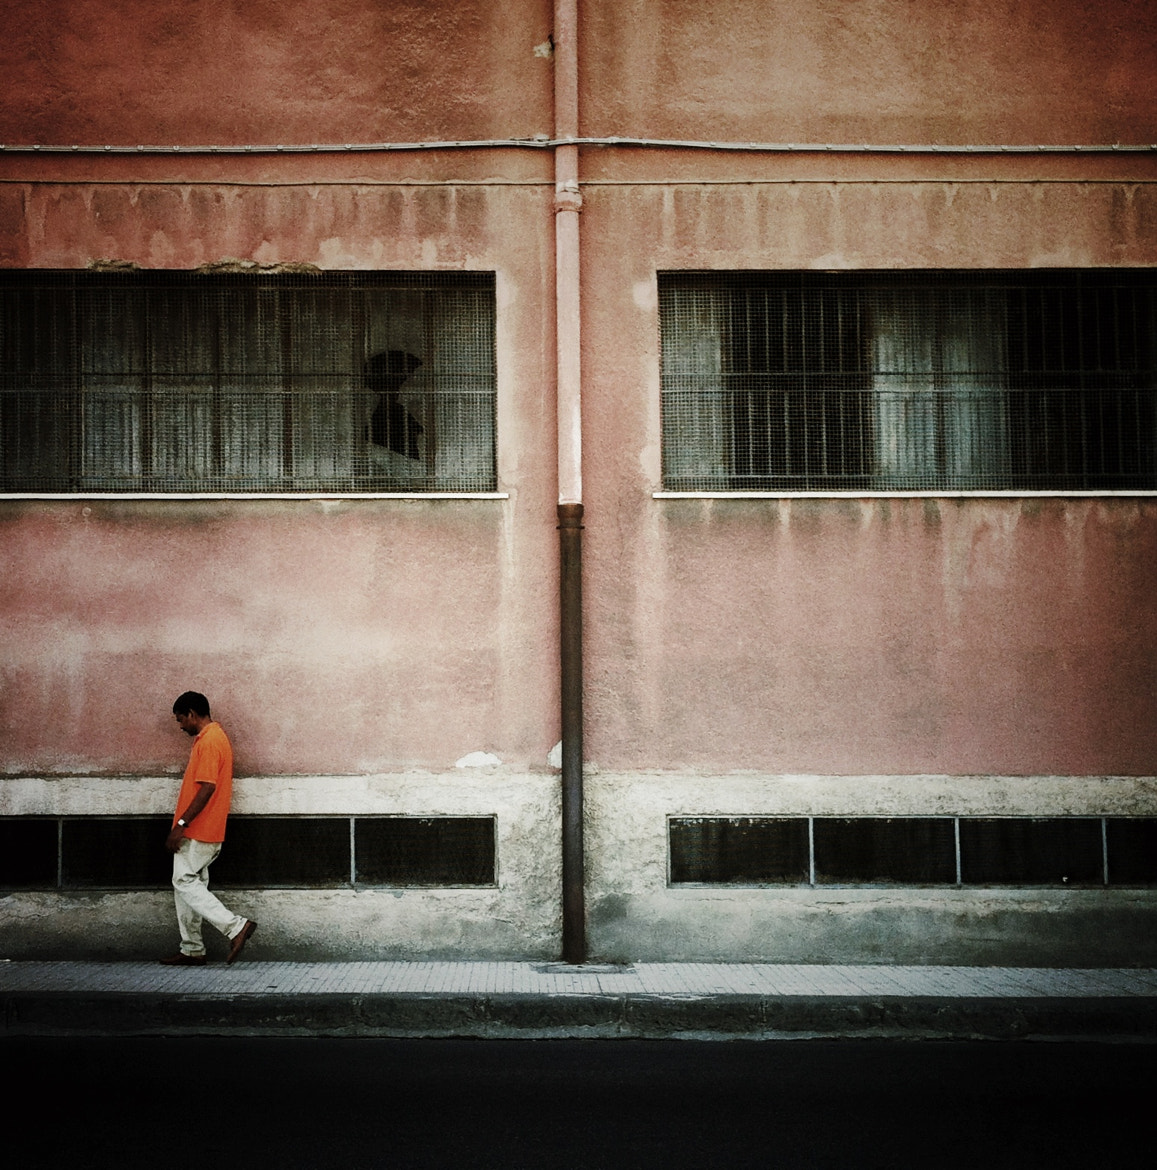 Photograph Untitled by Simone Cento on 500px